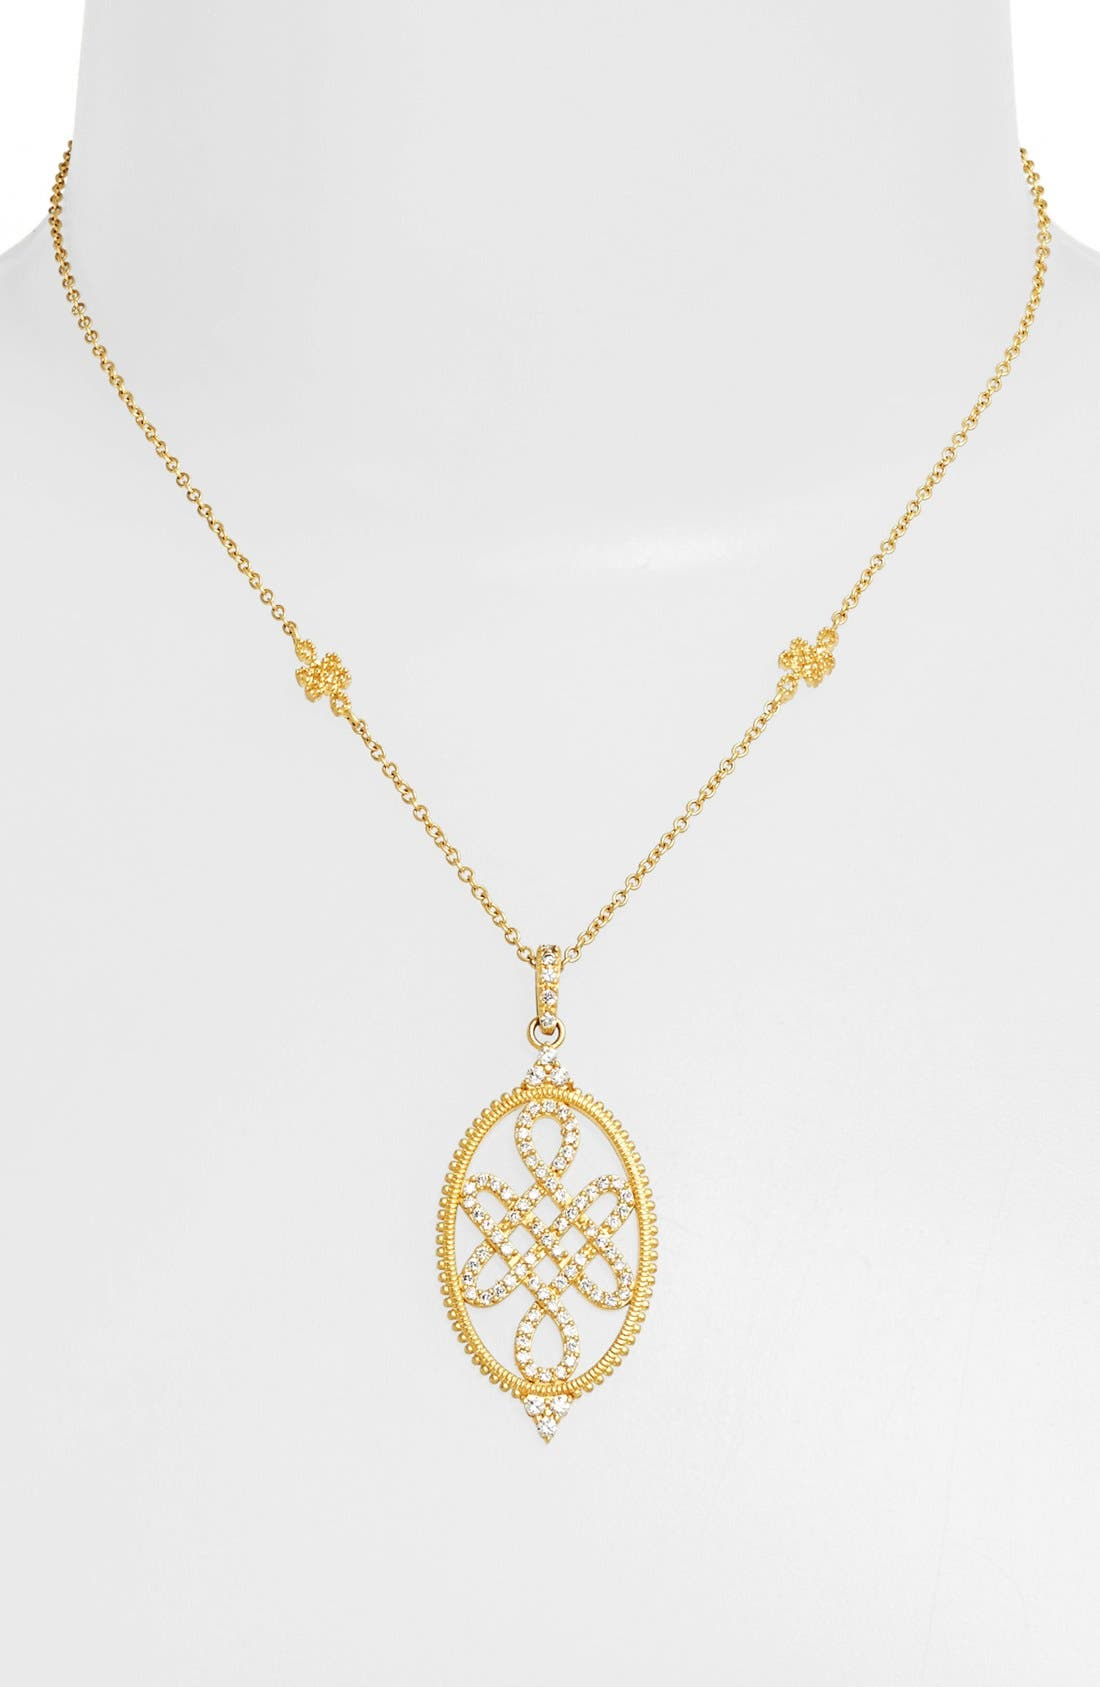 Main Image - FREIDA ROTHMAN 'Gramercy' Love Knot Pendant Necklace